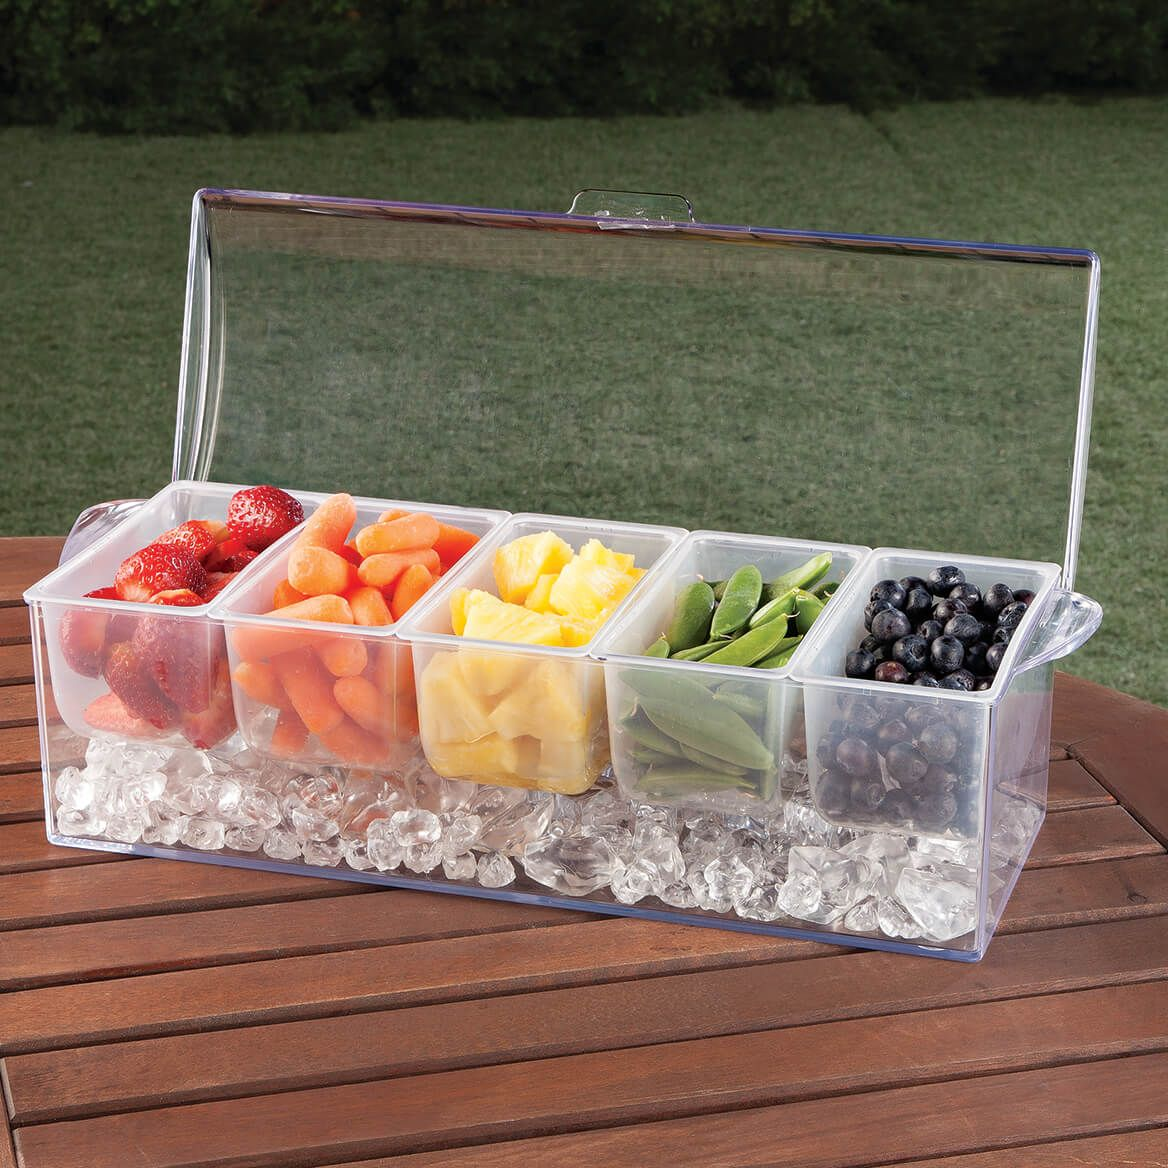 5 Section Condiment Server on Ice-363174